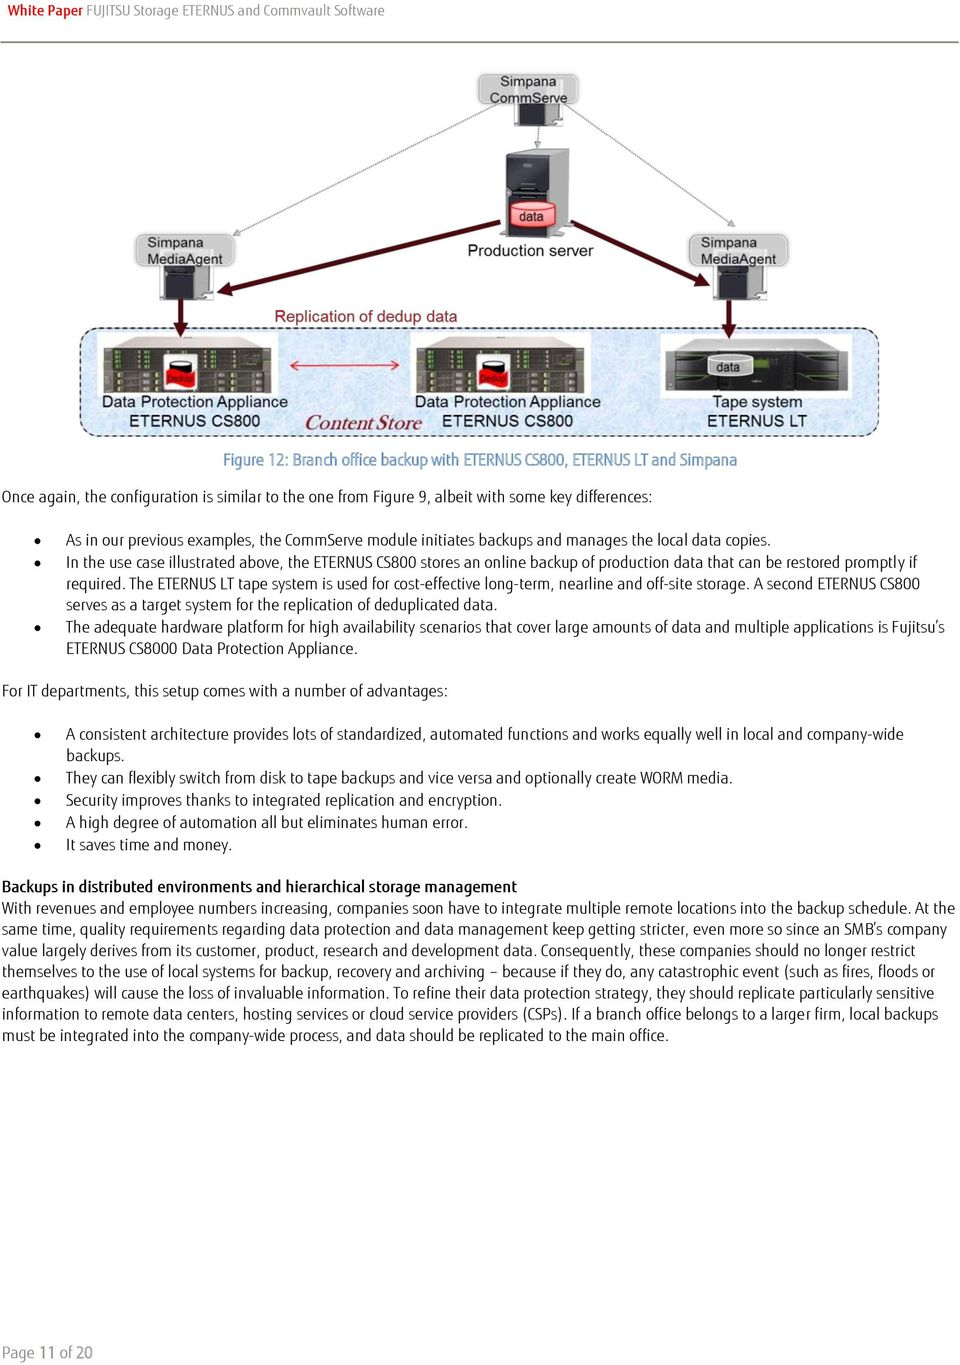 White Paper FUJITSU Storage ETERNUS and Commvault Software - PDF